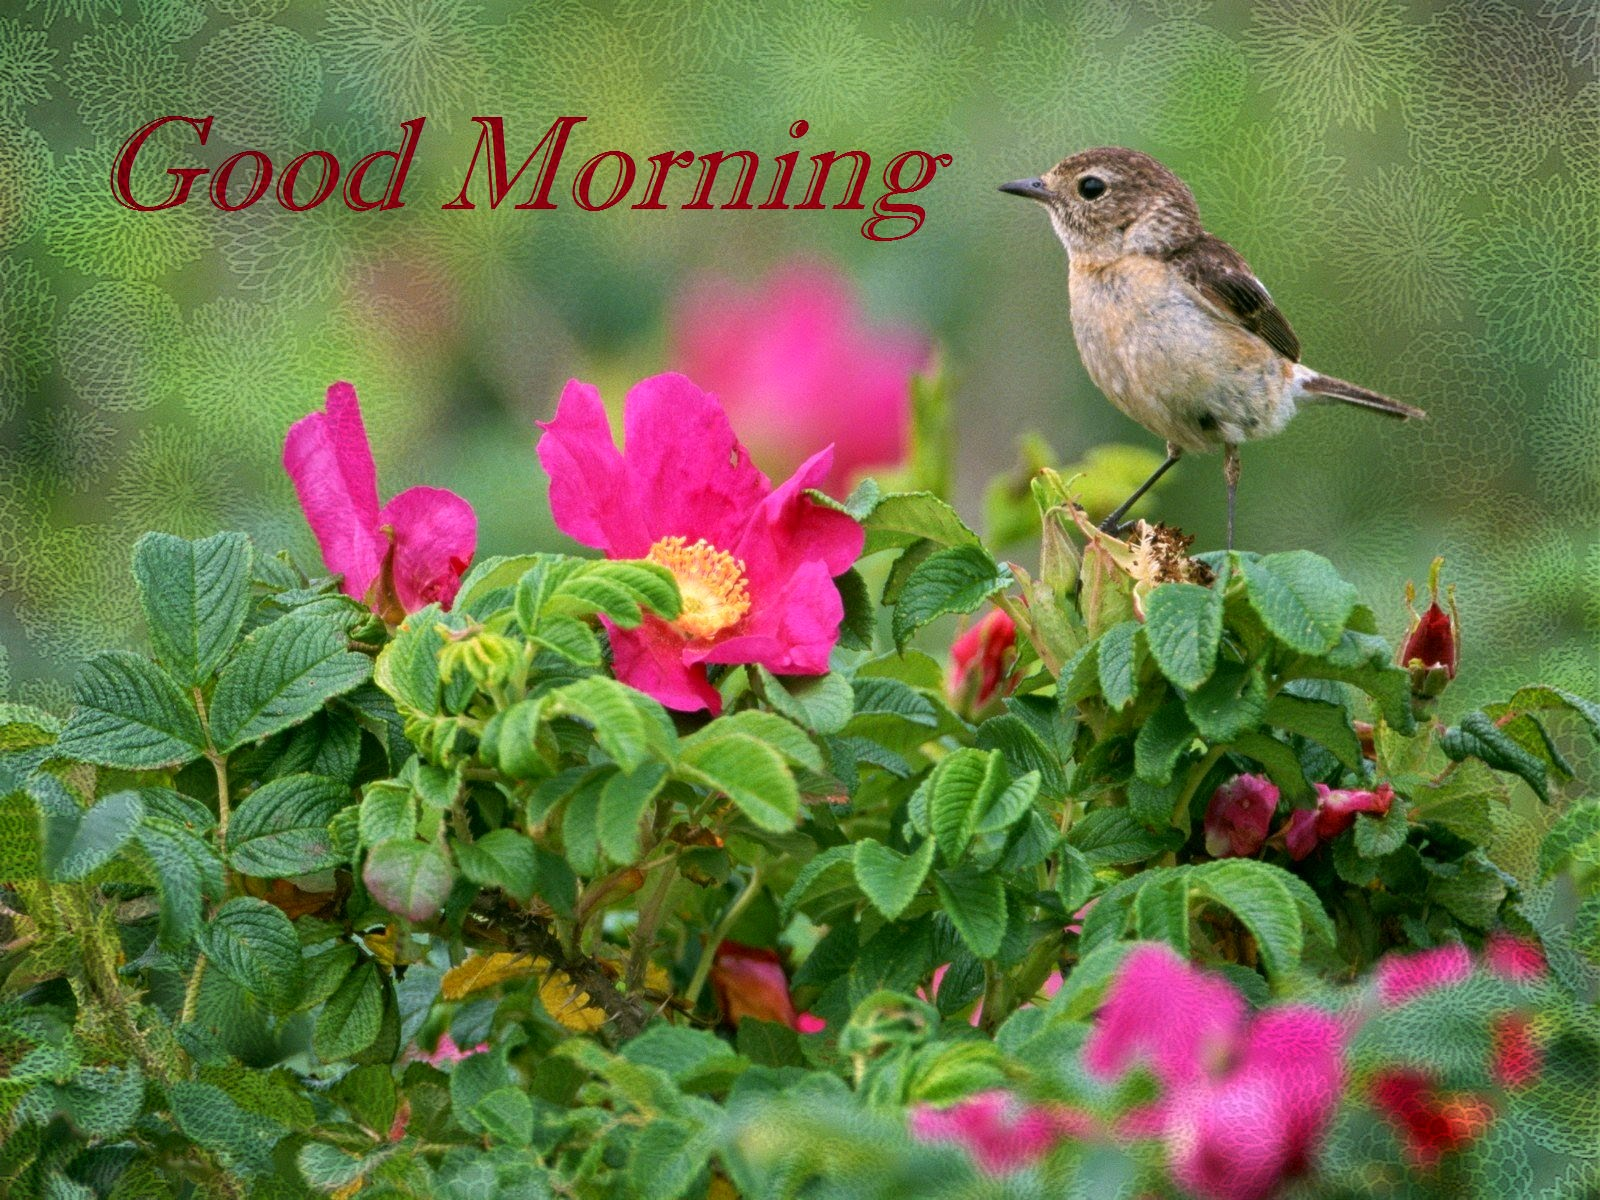 Love Birds Good Morning Wallpaper : Good Morning Wishes With Birds Pictures, Images - Page 23